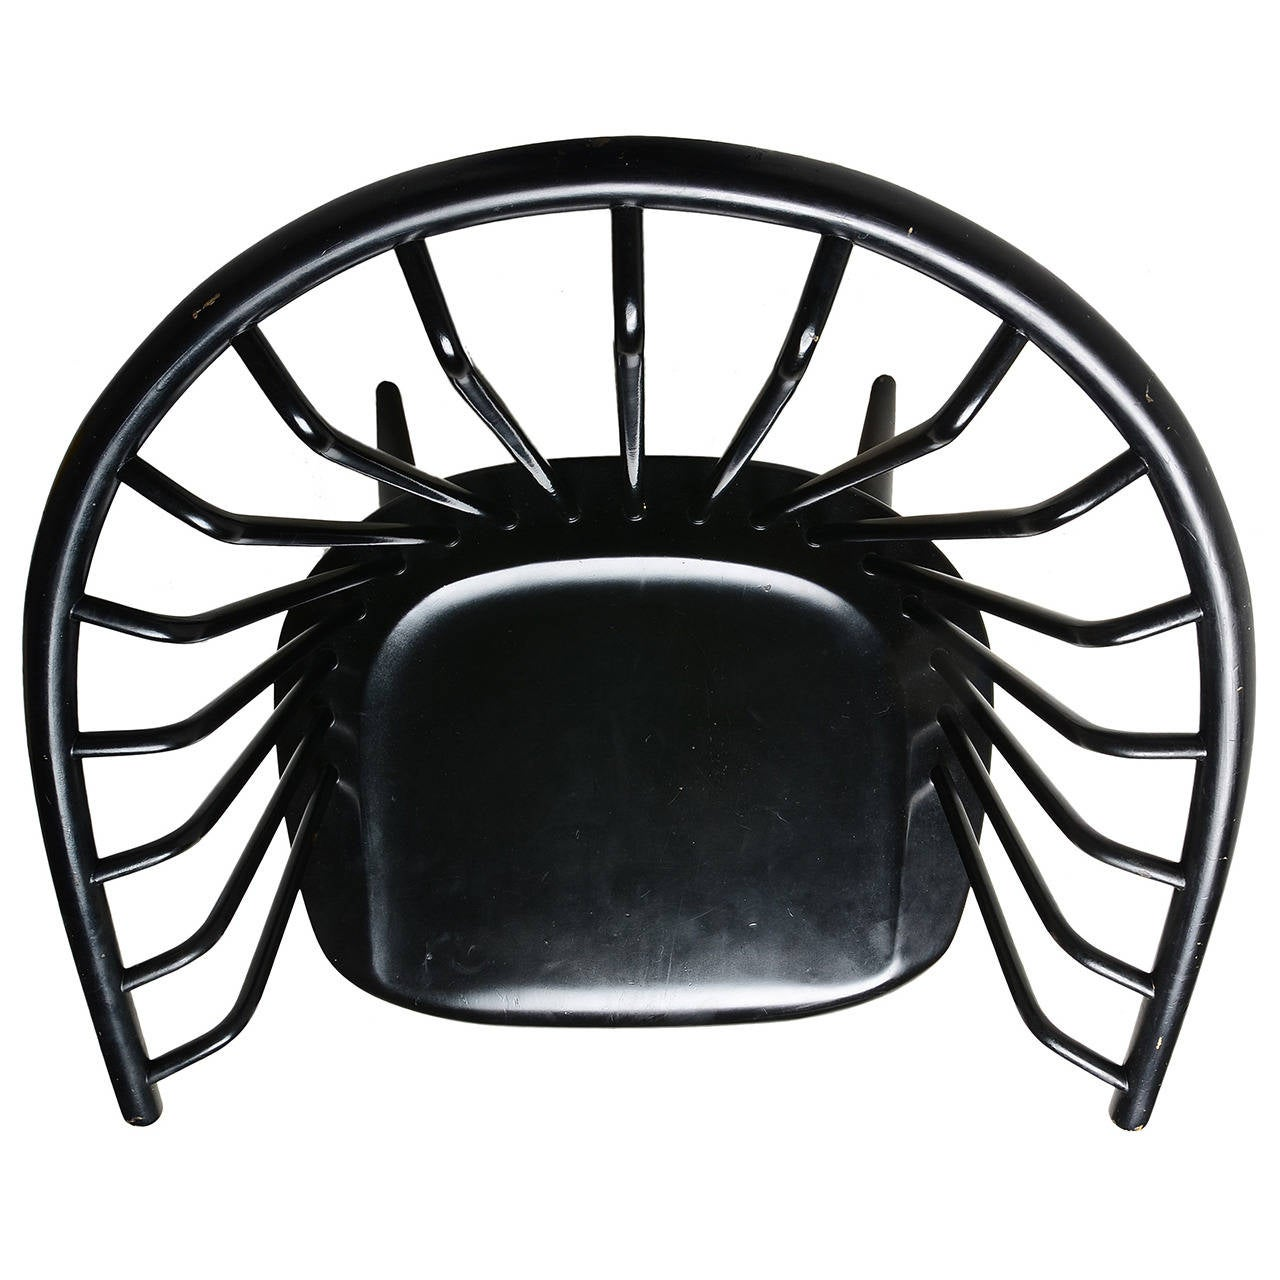 ilmari tapiovaara crinolette lounge chair for sale at 1stdibs. Black Bedroom Furniture Sets. Home Design Ideas